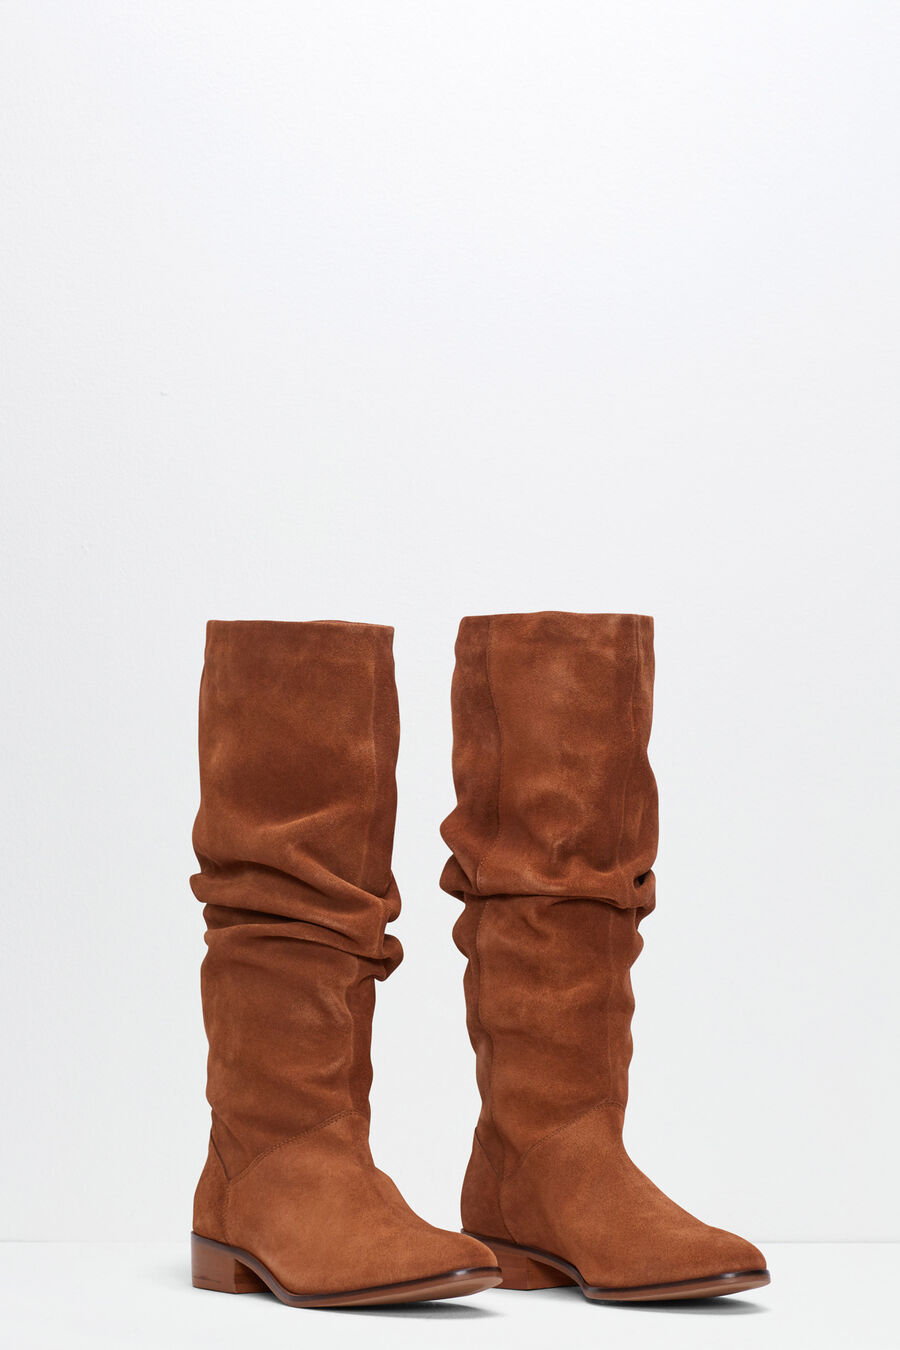 Split leather country boots